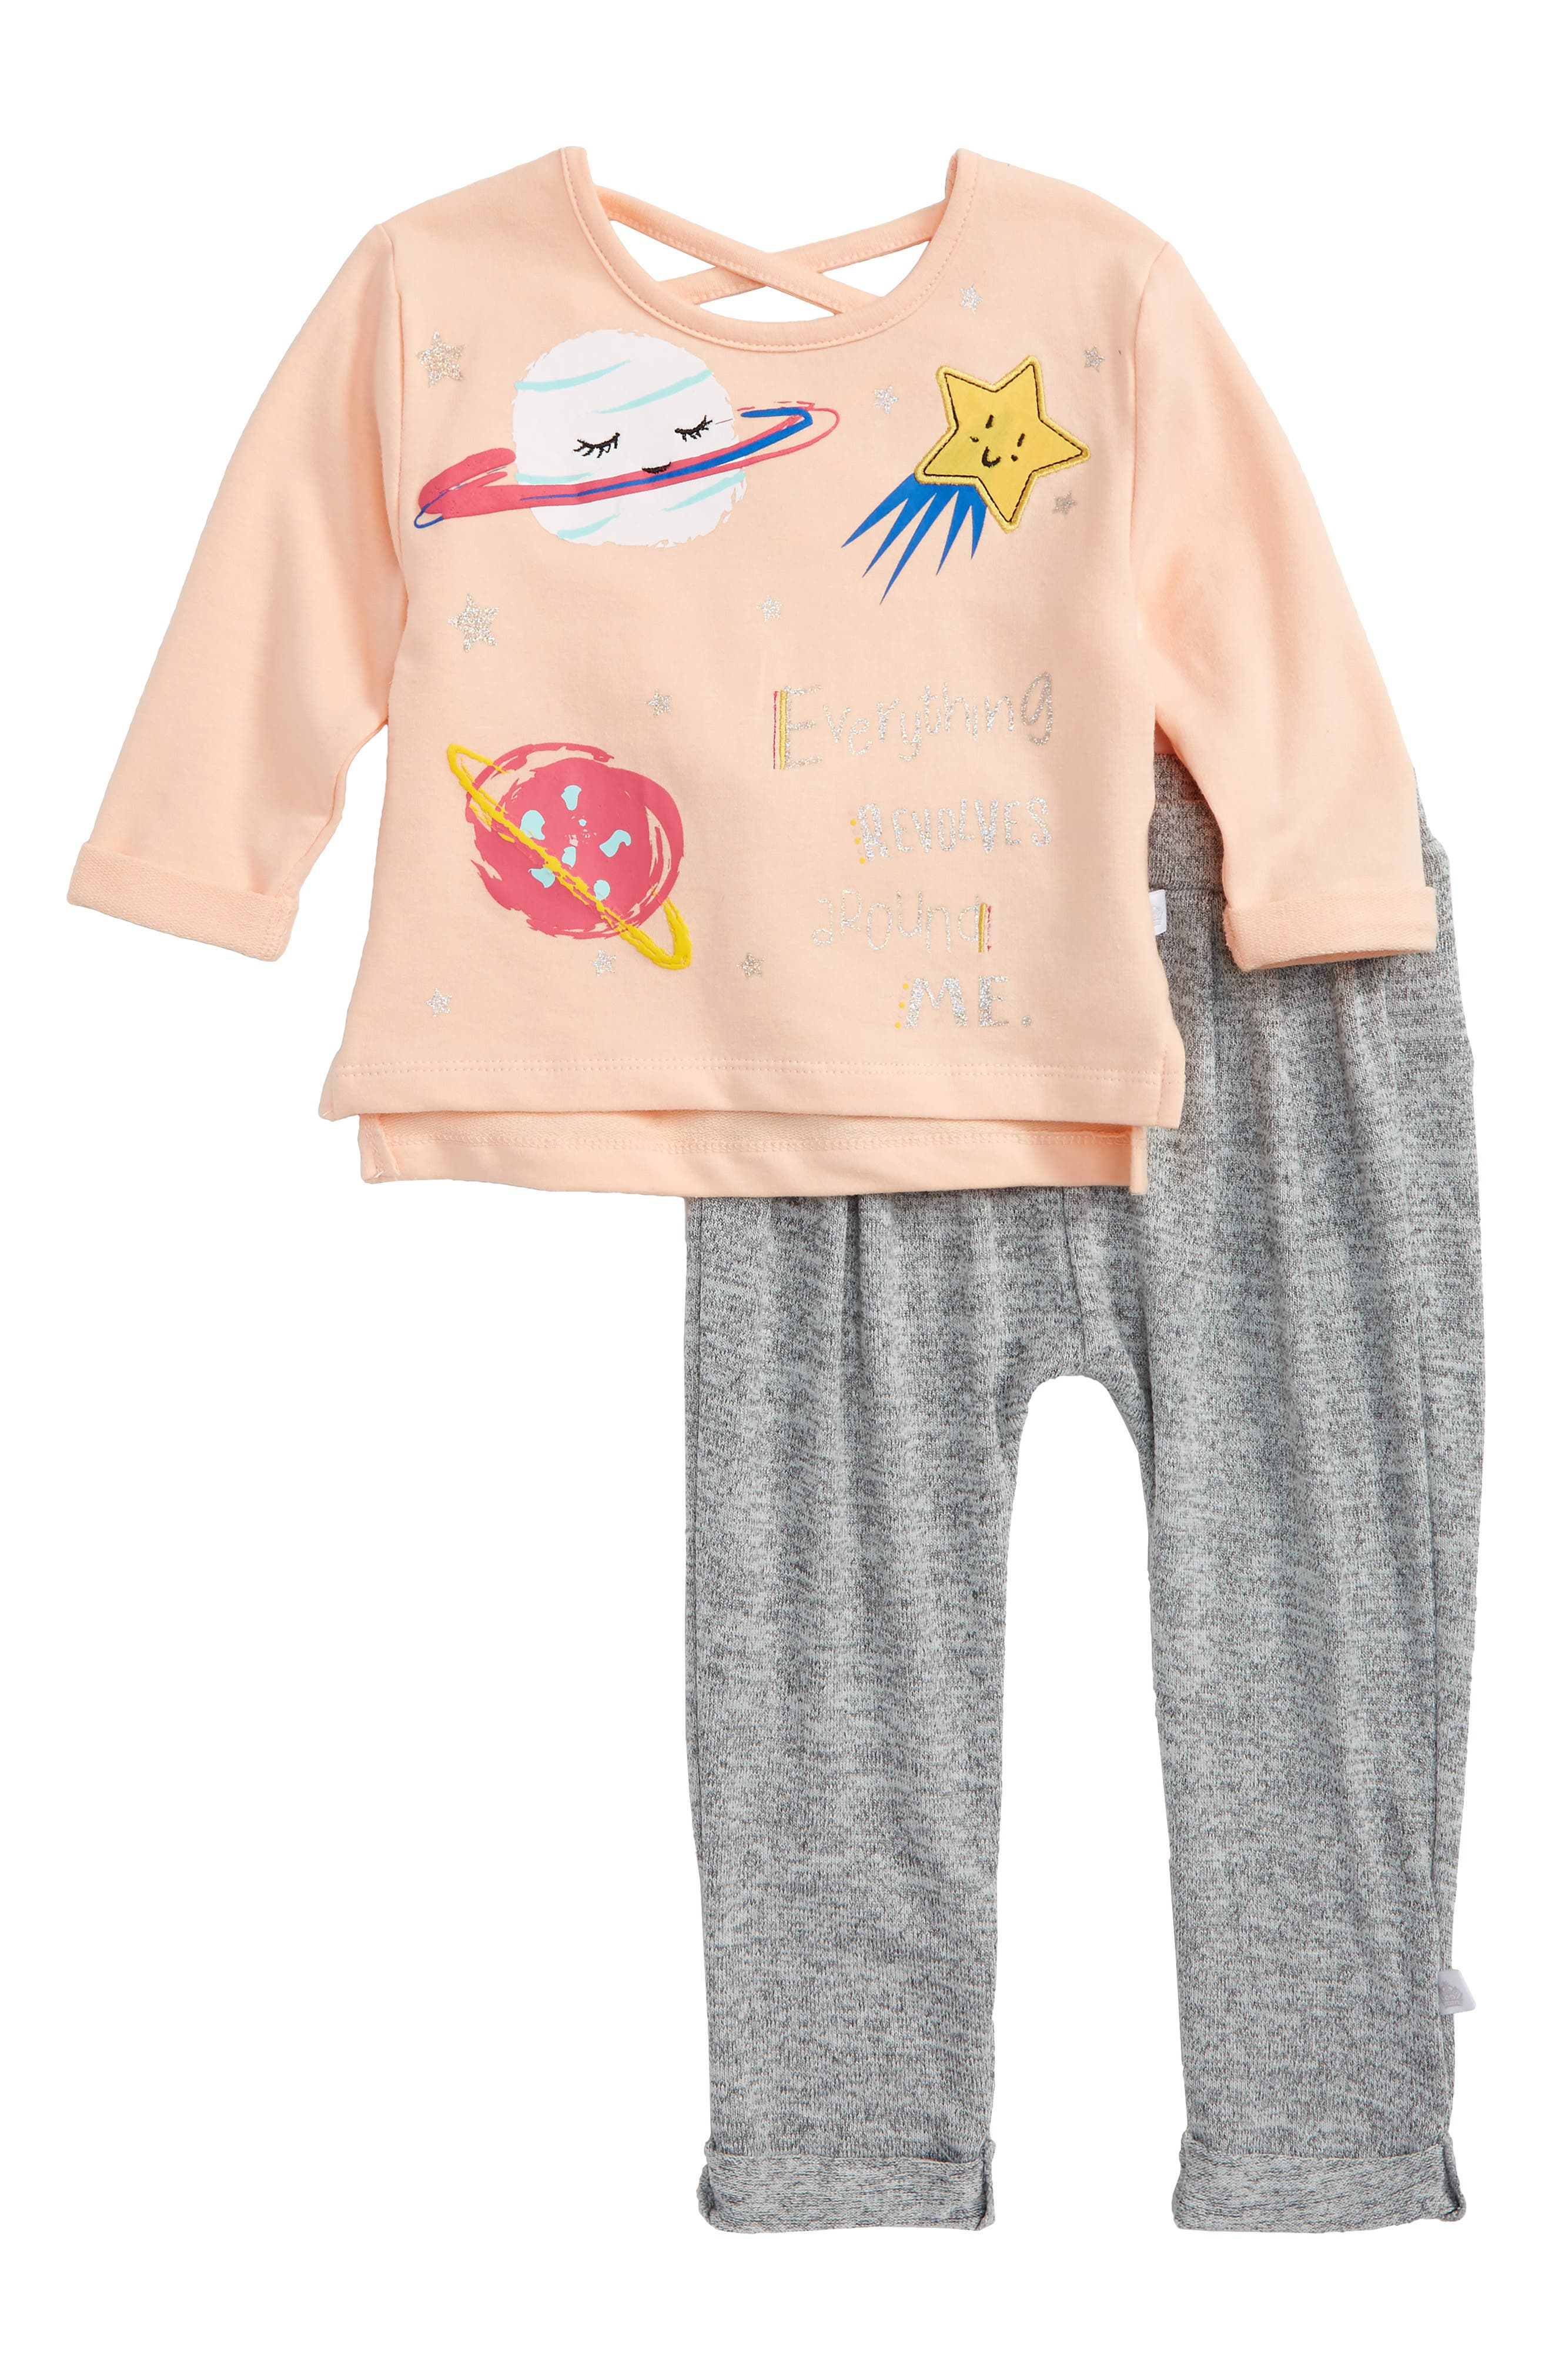 Rosie Pope Everything Revolves Around Me Graphic Top & Pants Set (Baby Girls)